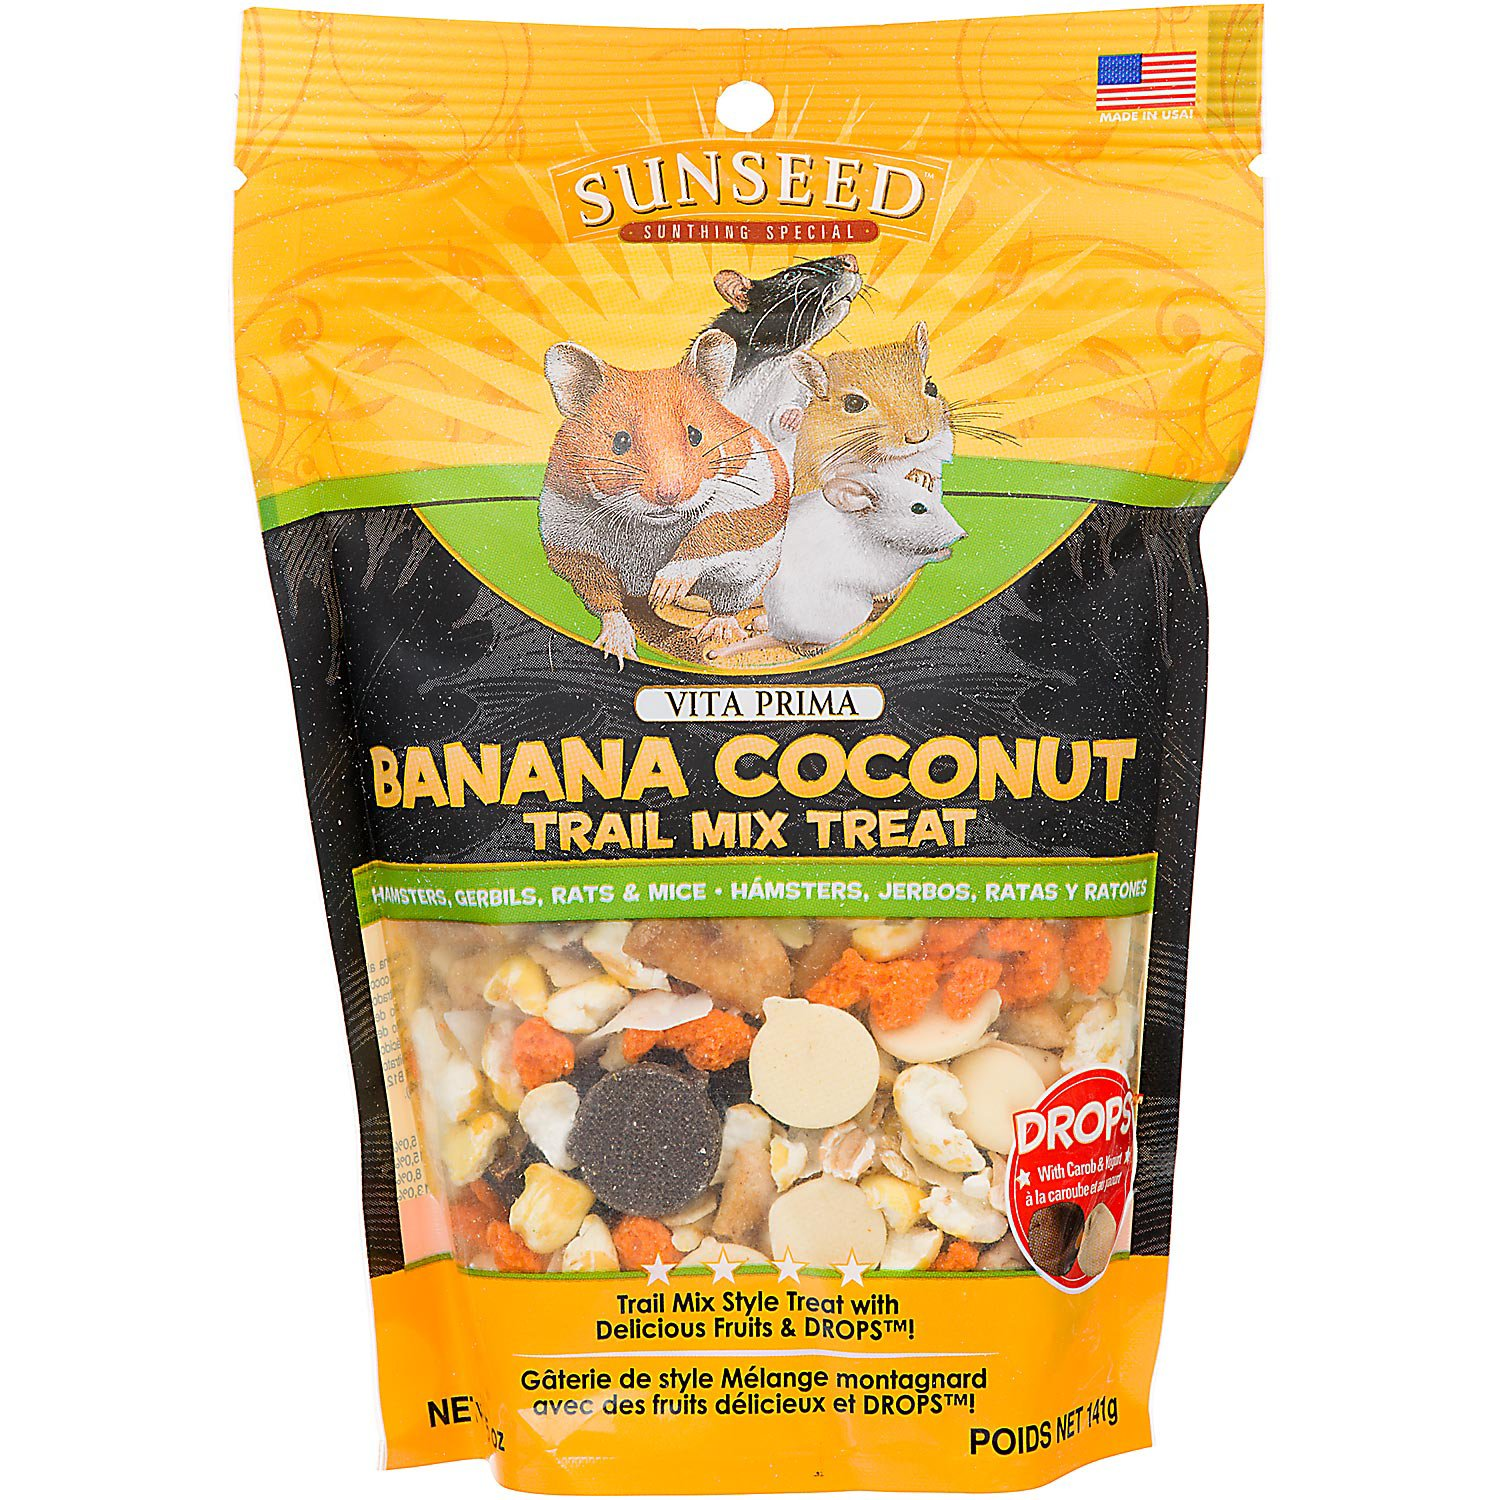 Vitakraft Vita Prima Banana Coconut Trail Mix Treat